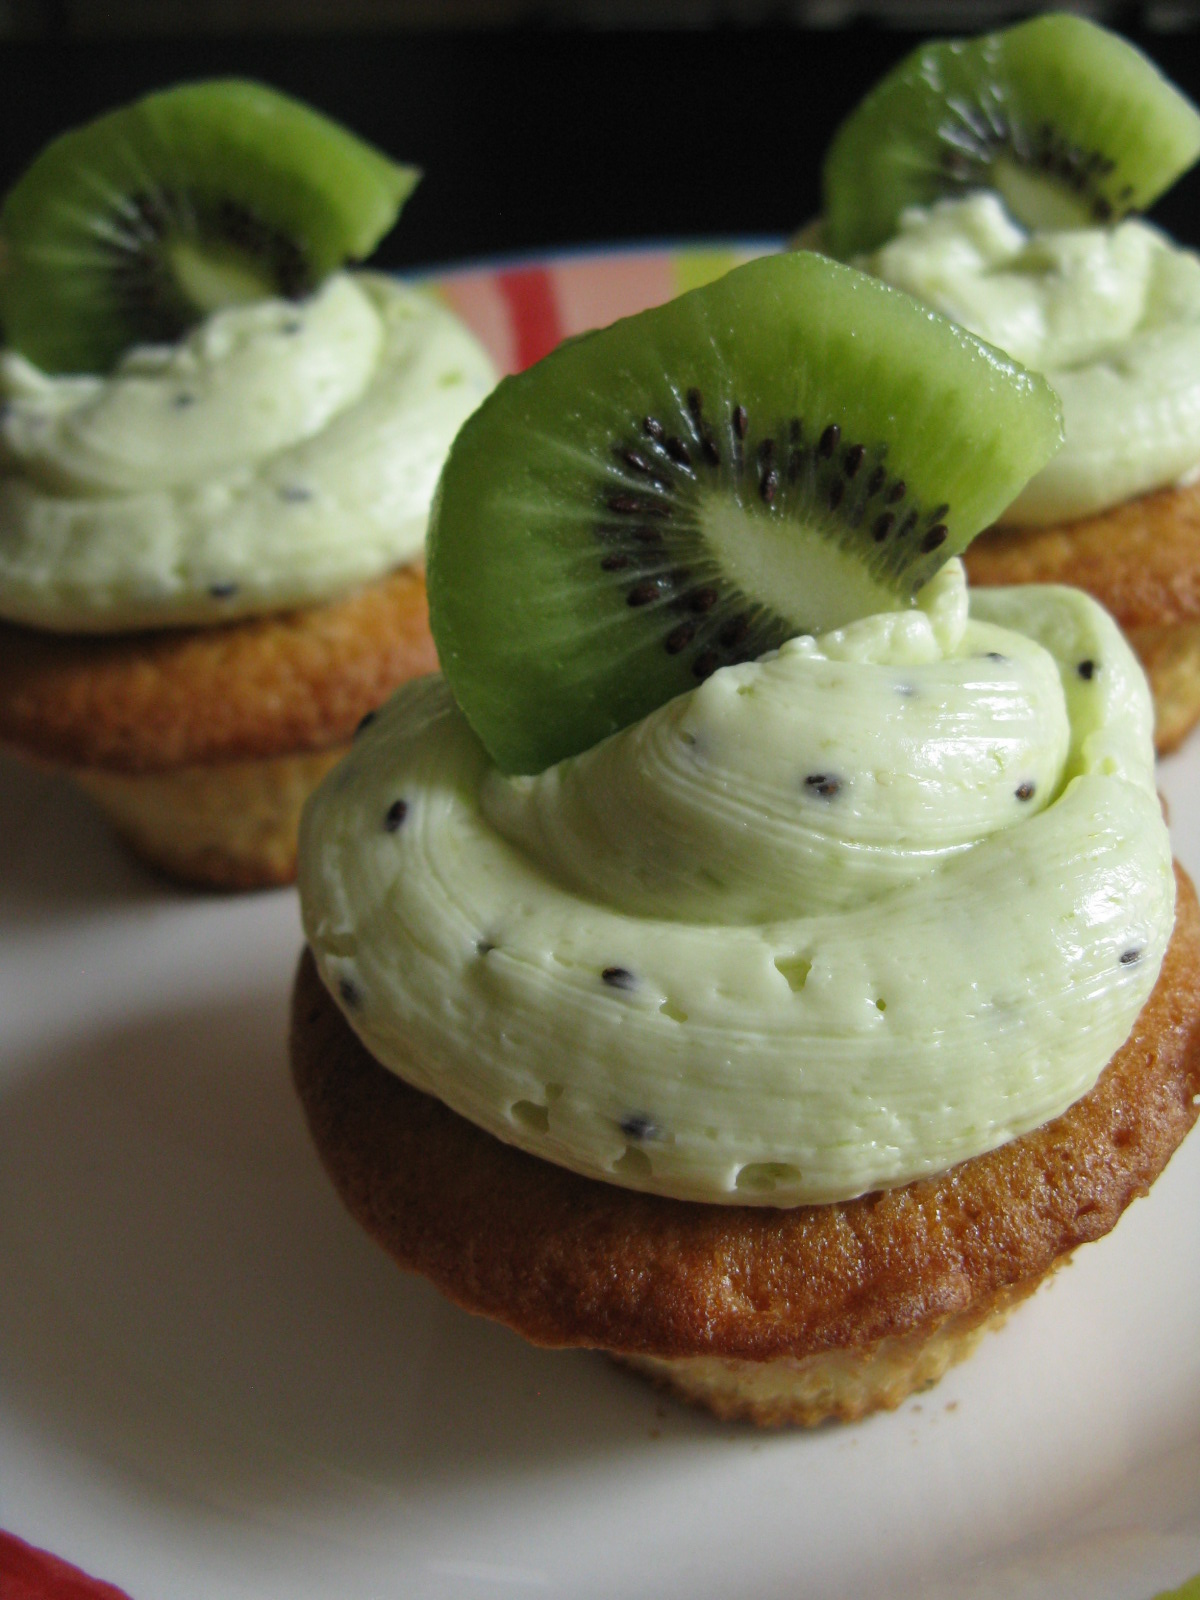 Kiwi Vanilla Cupcakes with Kiwi Buttercream Frosting My Edible